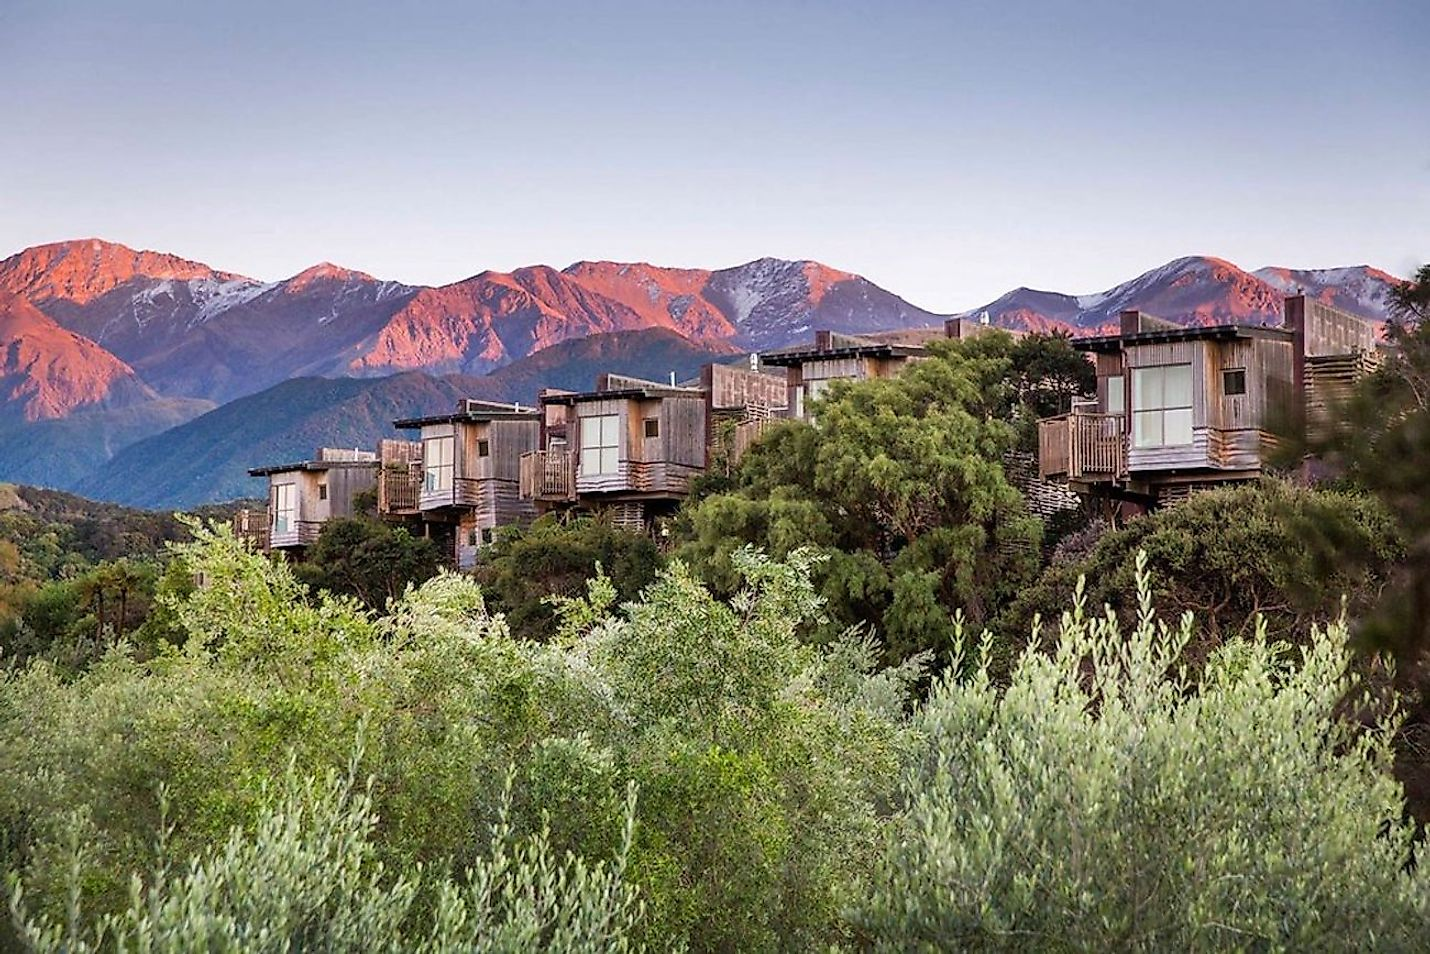 Hapuku Lodge and Tree Houses, New Zealand. Image credit: www.hapukulodge.com